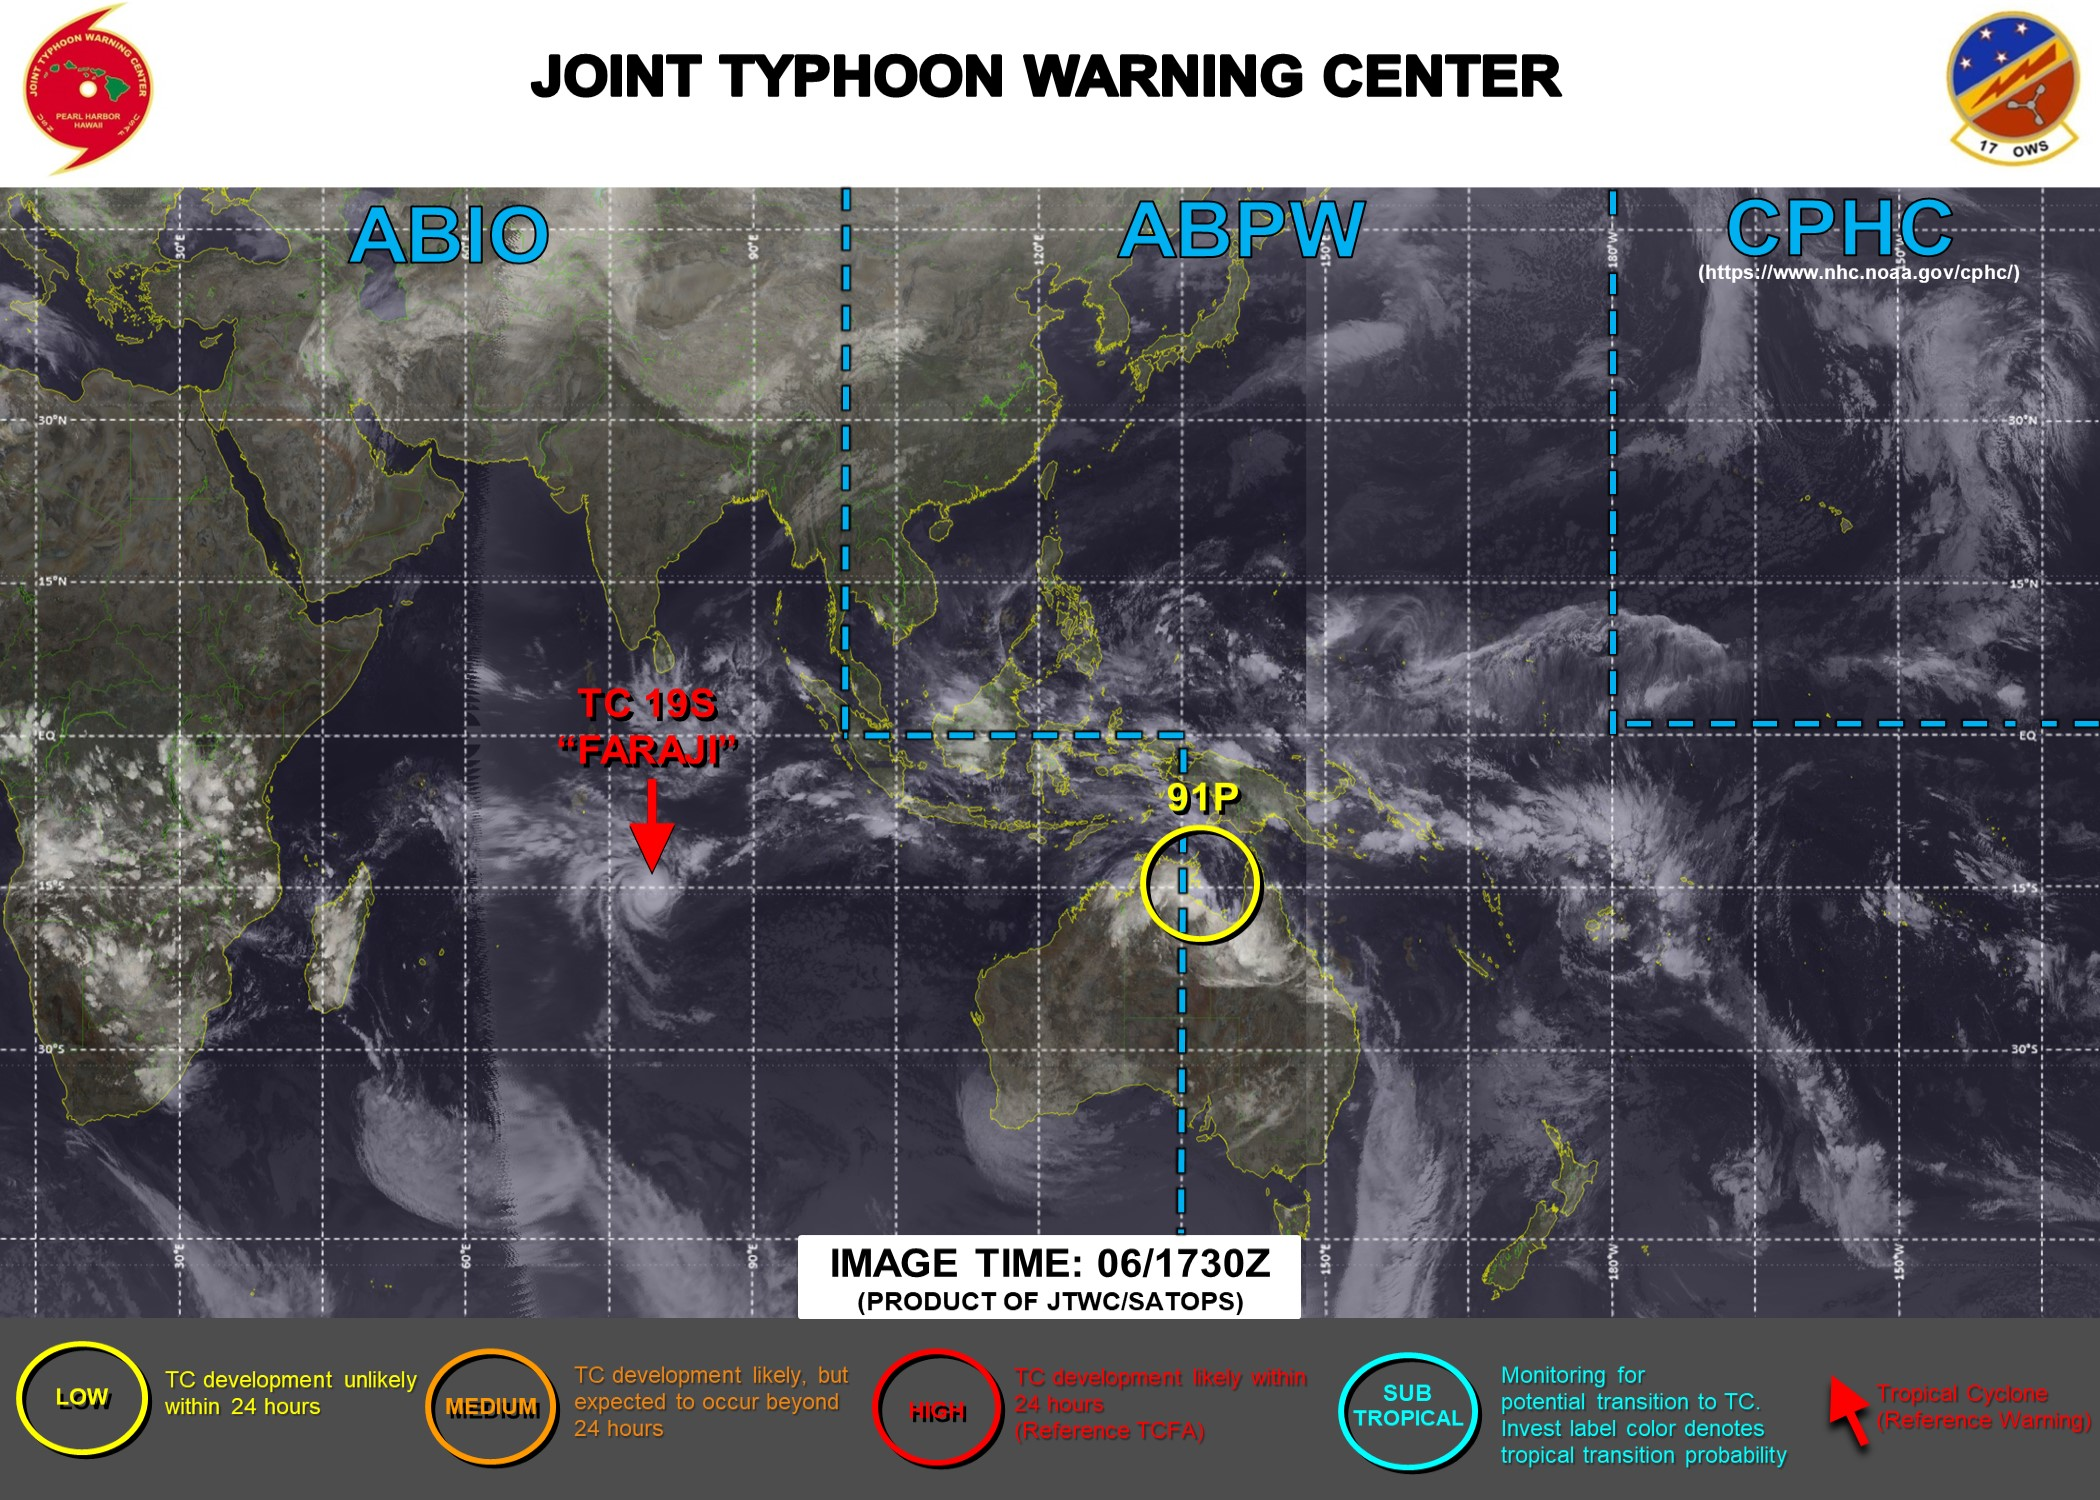 06/1830UTC. JTWC IS ISSUING 12HOURLY WARNINGS ON 19S(FARAJI). 3 HOURLY SATELLITE BULLETINS ARE PROVIDED FOR 19S AND INVEST 91P WHICH HAS RECENTLY MOVED OVER-LAND. THEY WERE DISCONTINUED FOR THE REMNANTS OF 18S AT 06/1420UTC.